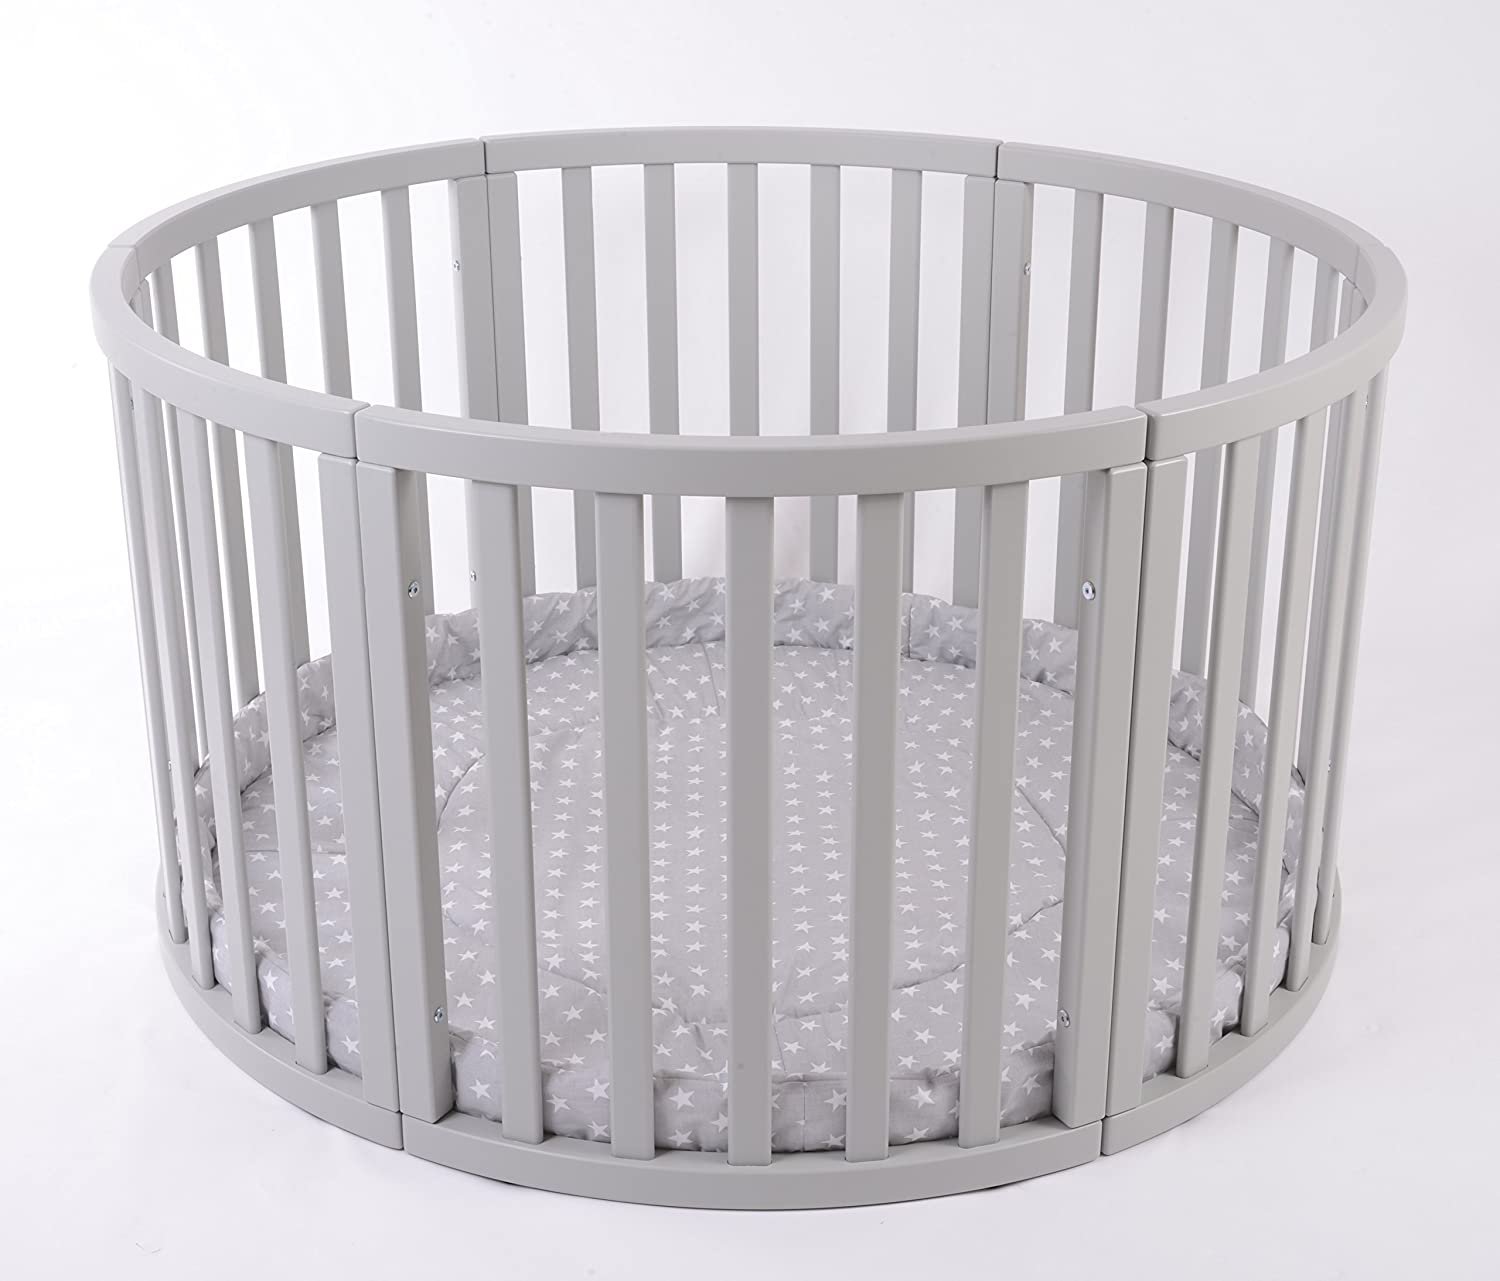 Round PLAYPEN APOLLO QUATTRO Brand NEW VERY LARGE Wooden play pen with play-mat in Grey with white Stars by MJmark SALE SALE